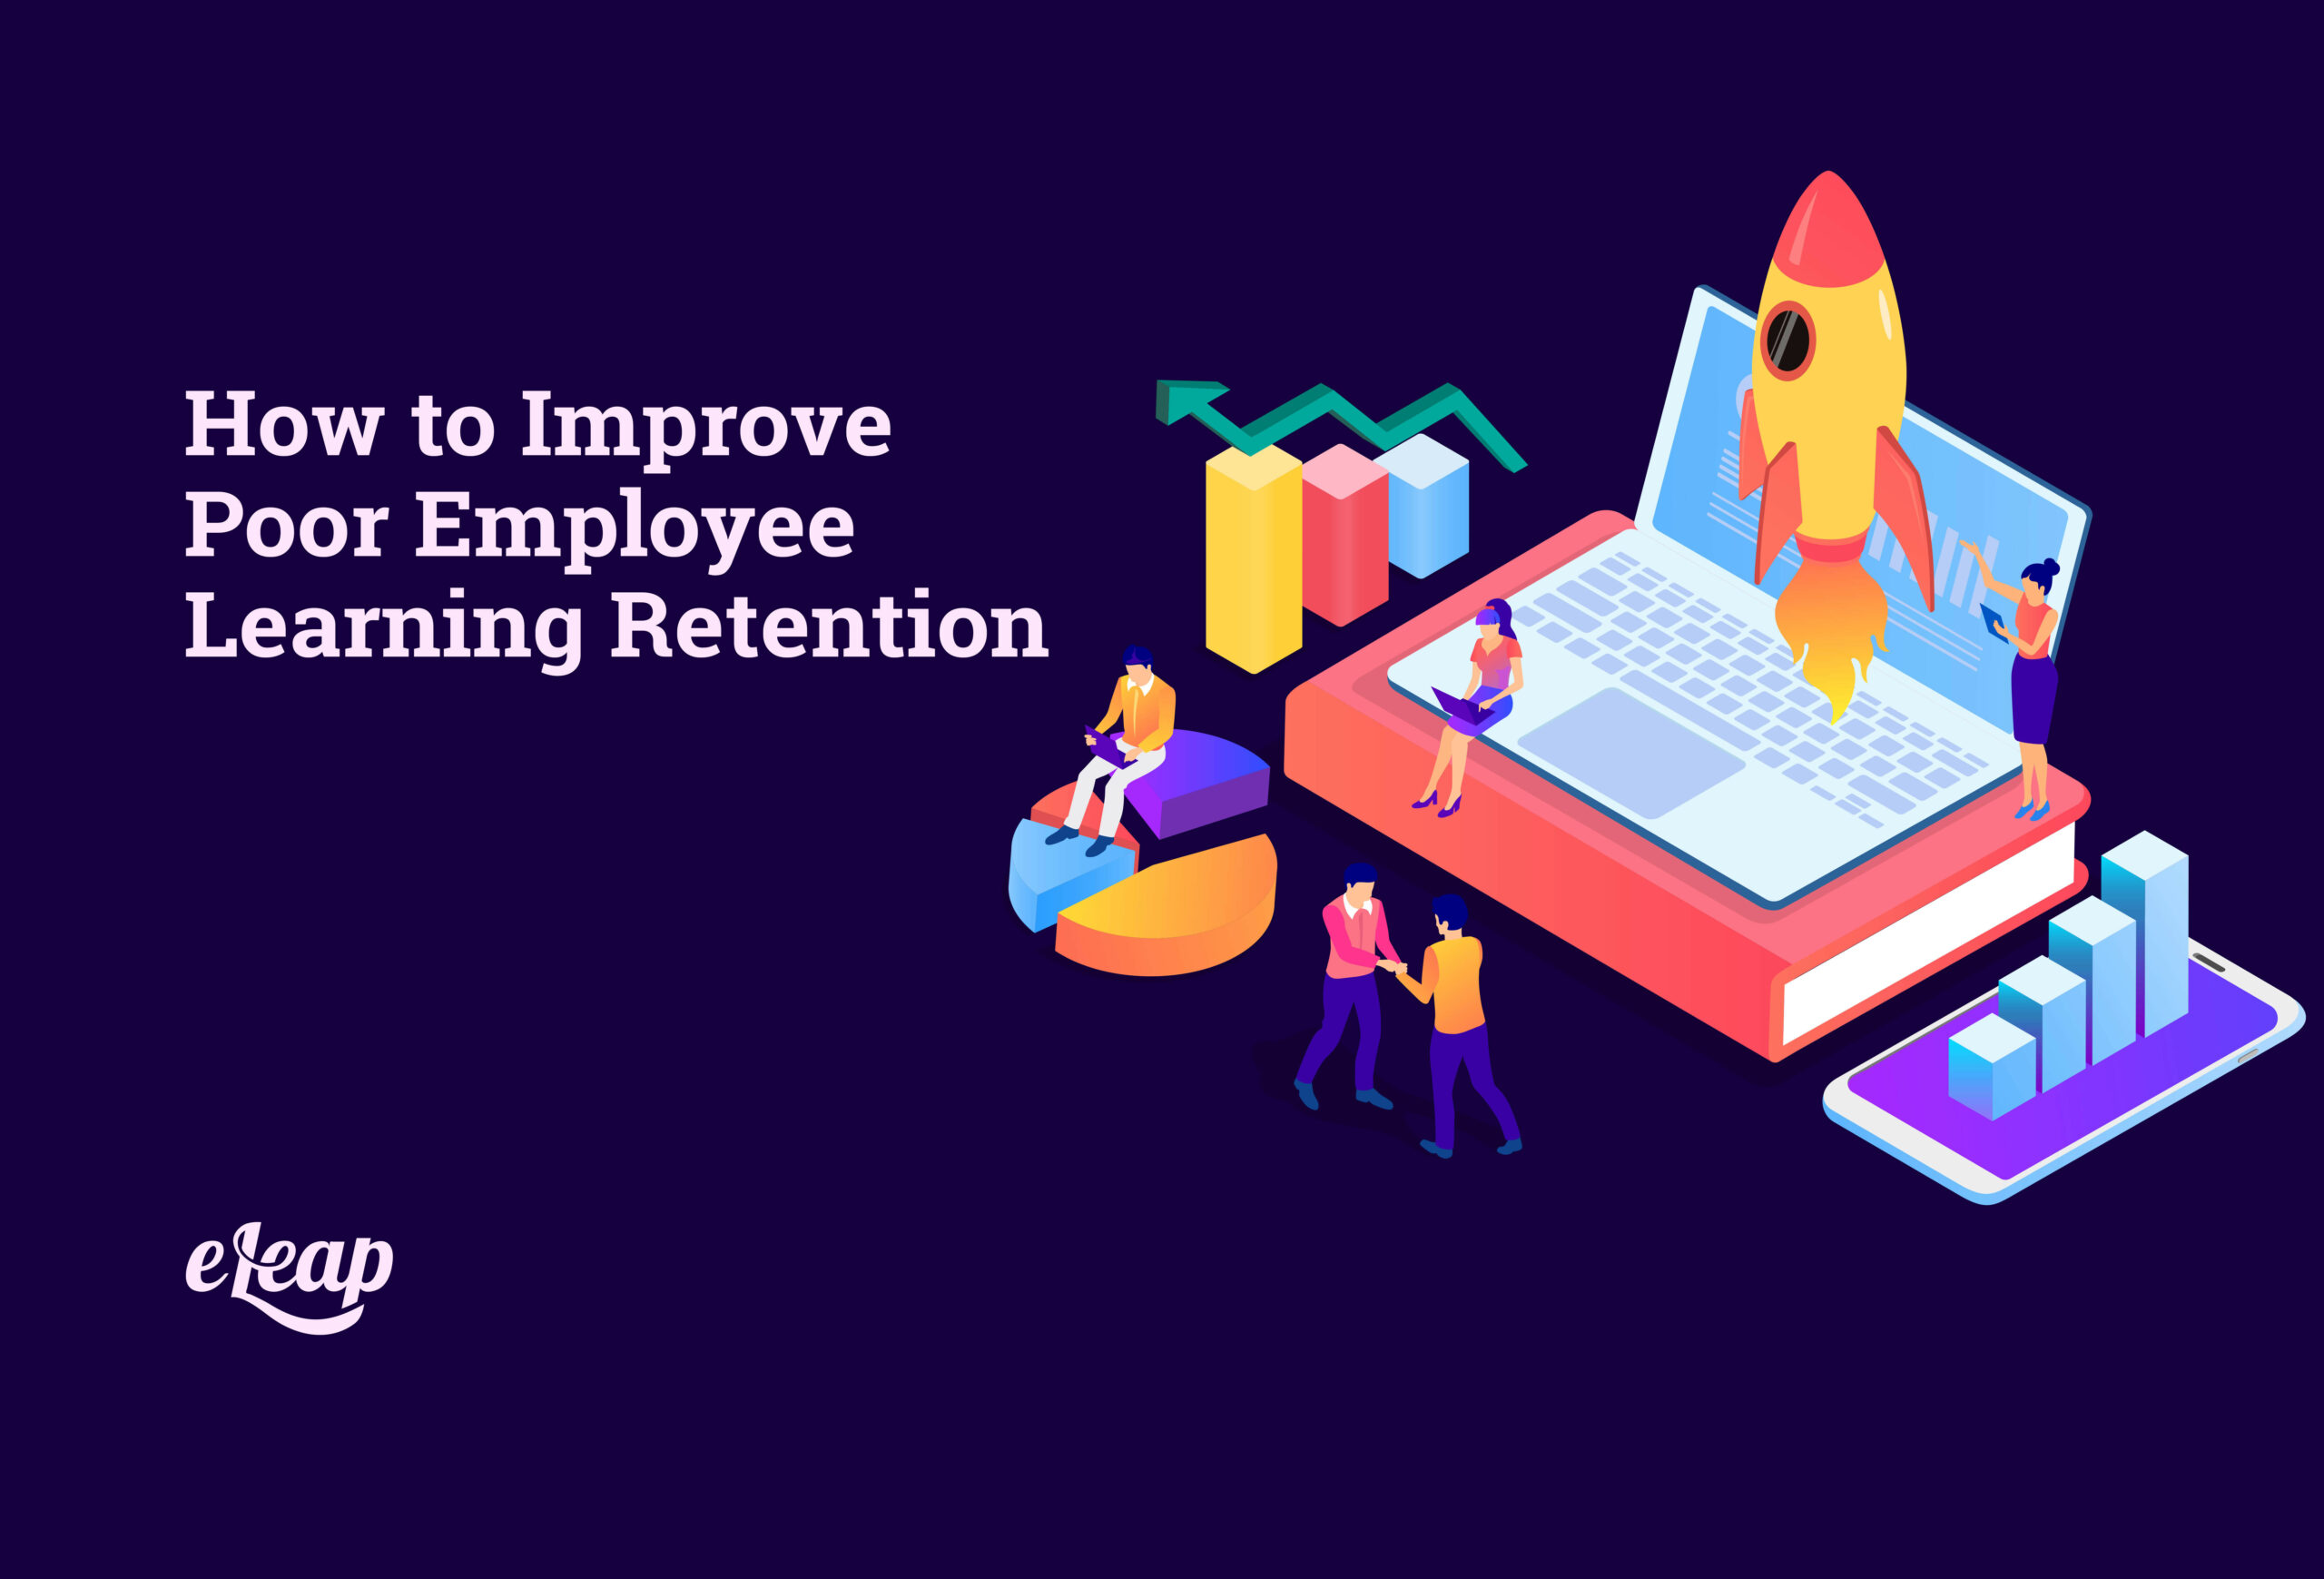 How to Improve Poor Employee Learning Retention